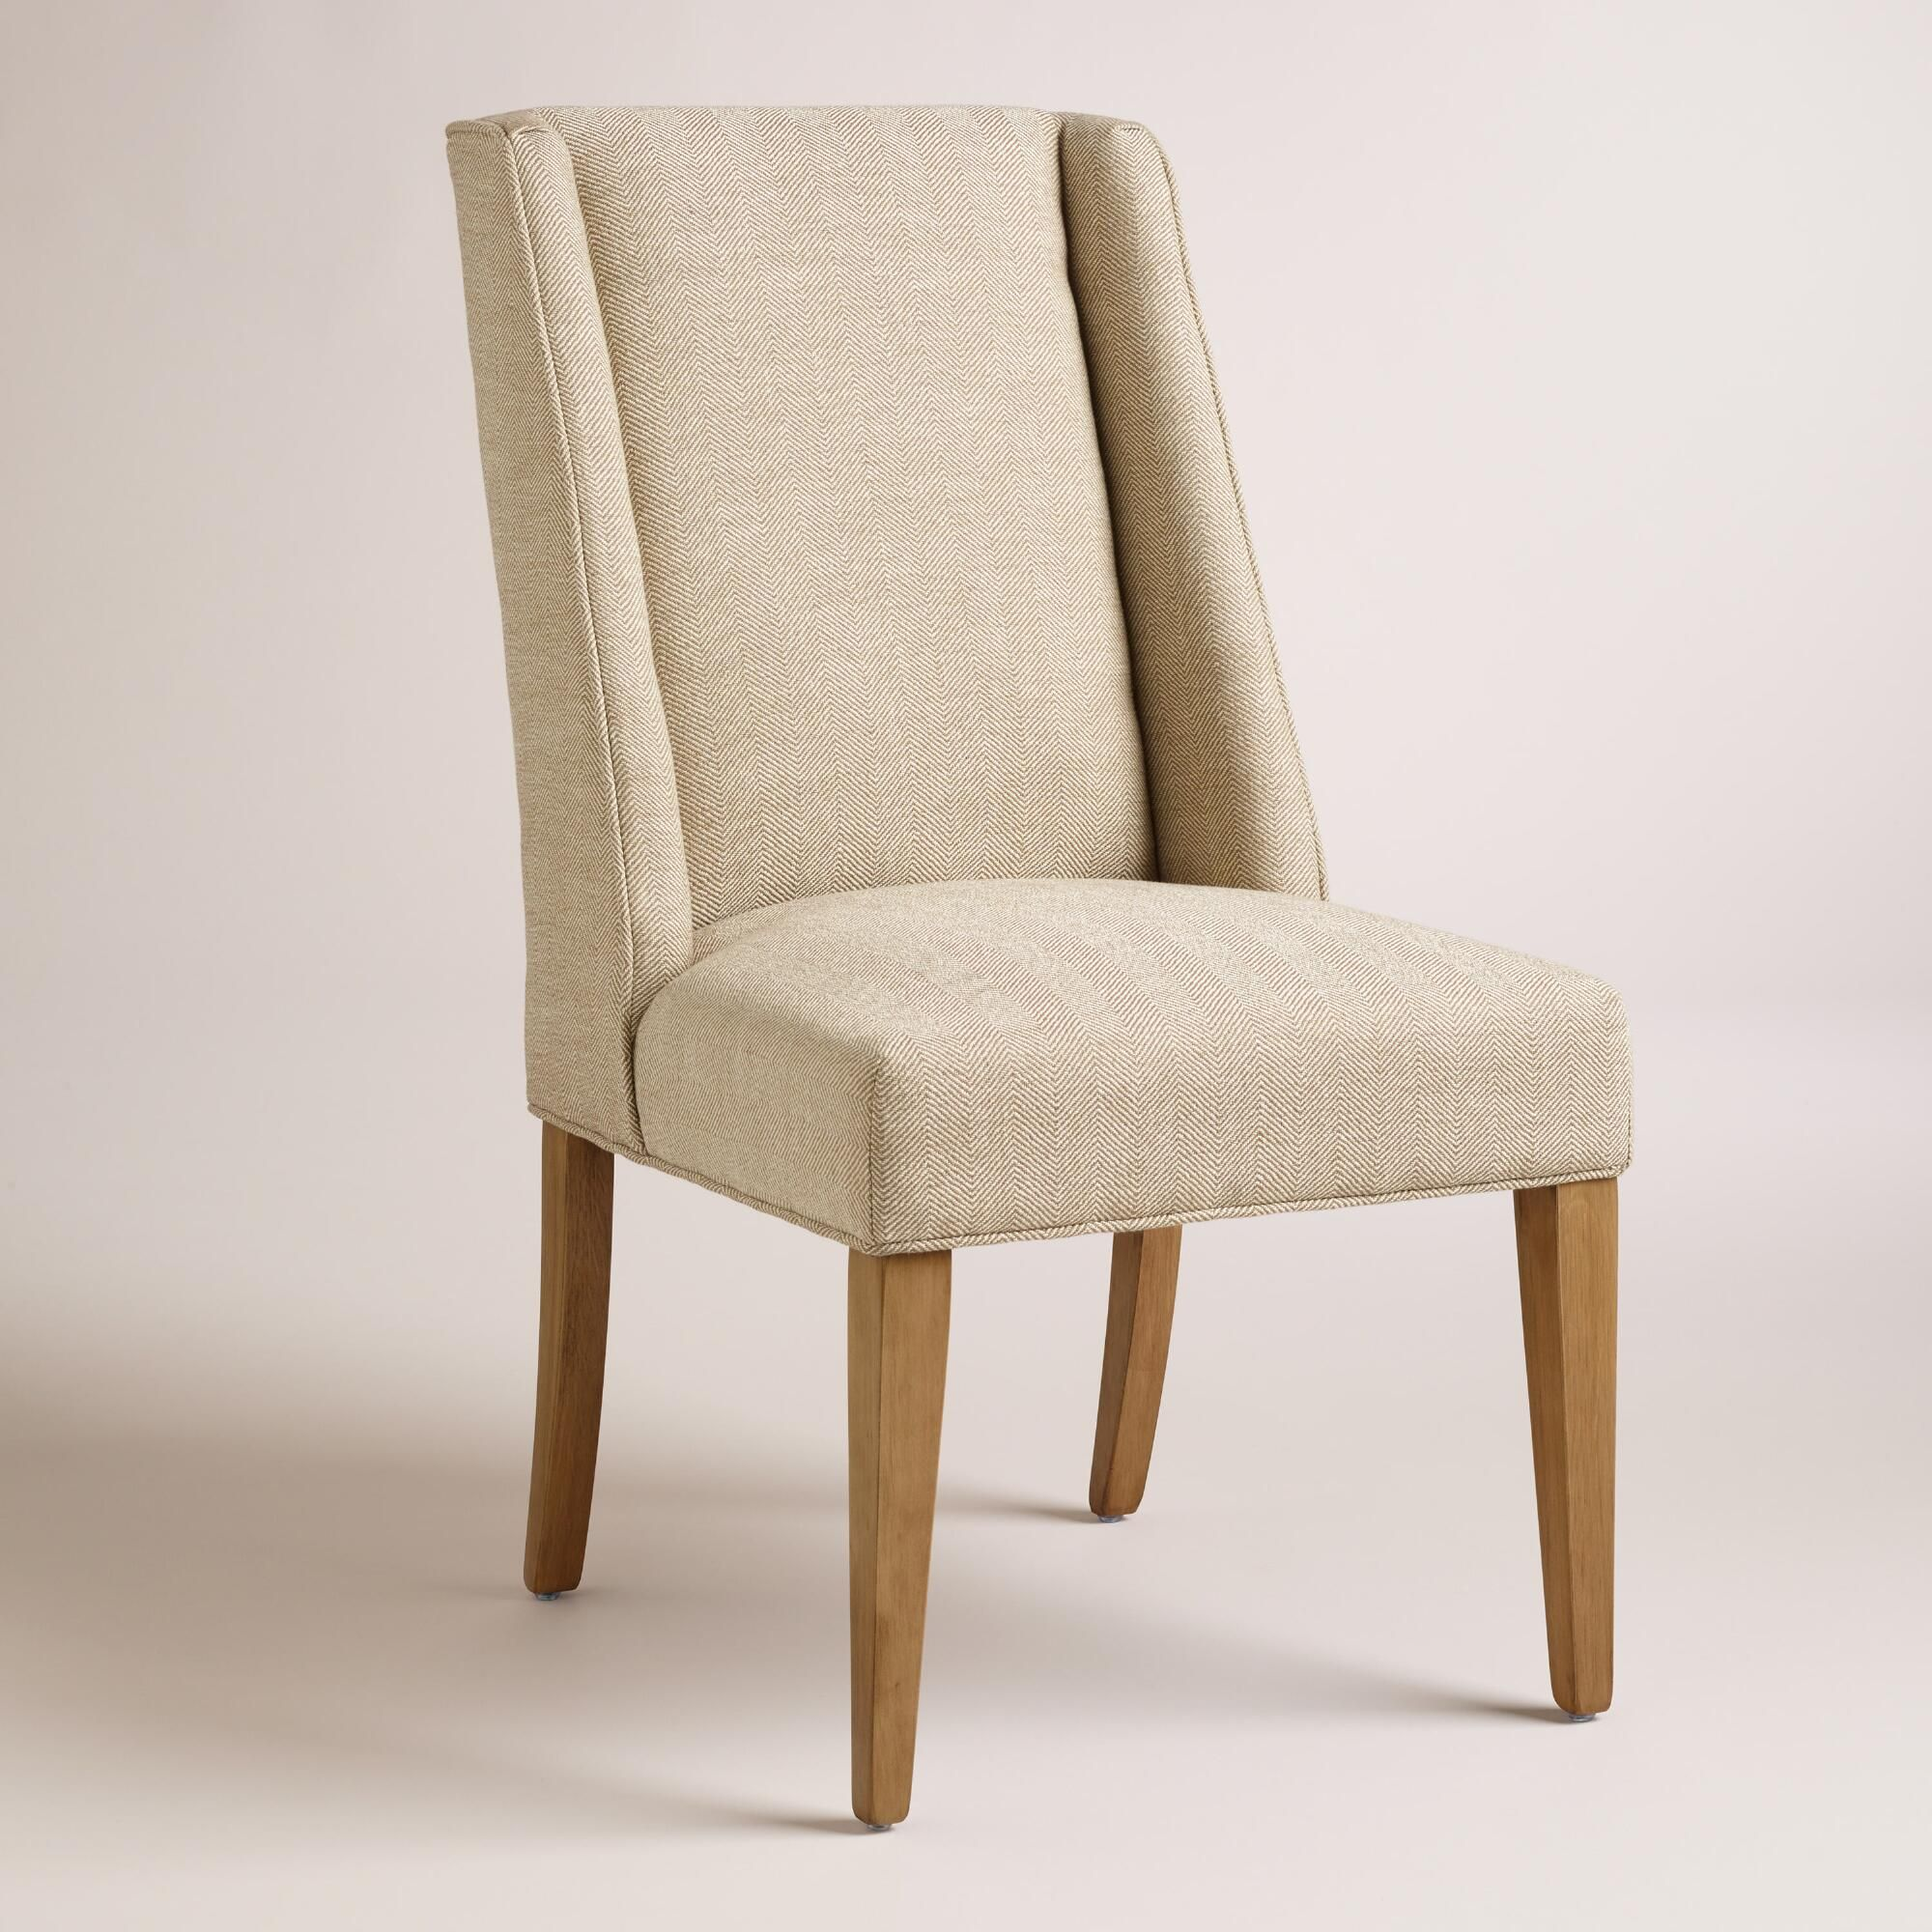 world market dining room chairs | Covered in neutral beige herringbone fabric, our handsome ...